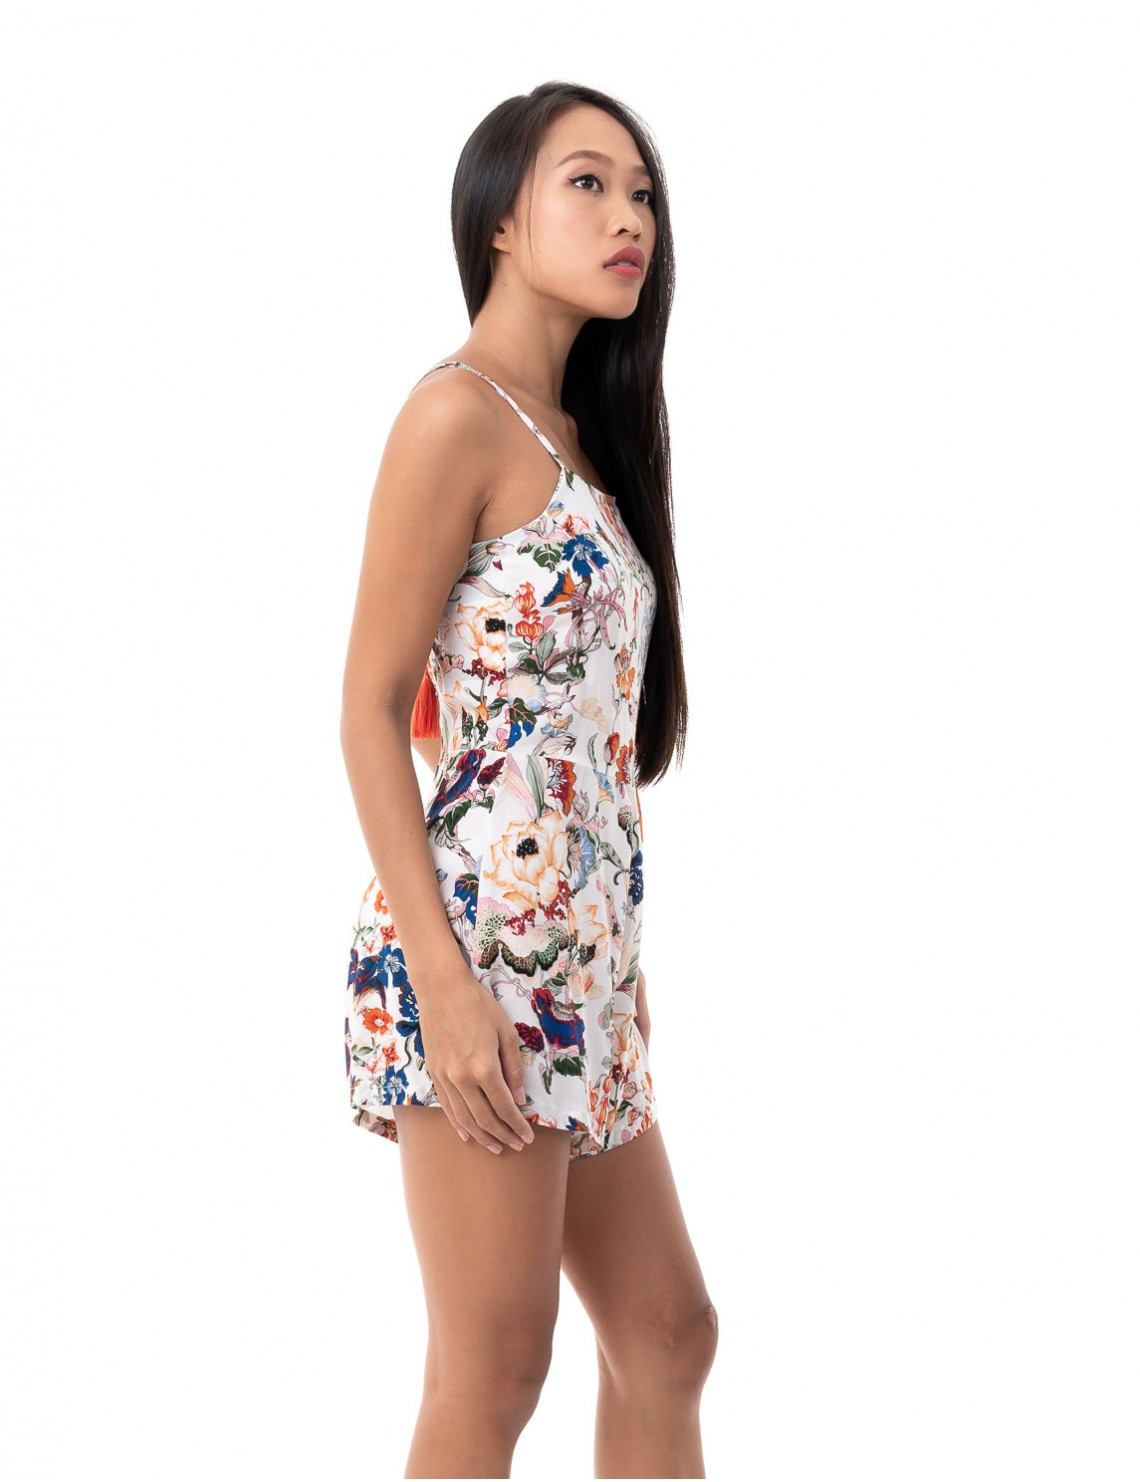 Playsuit Agata - Japonese Floral White